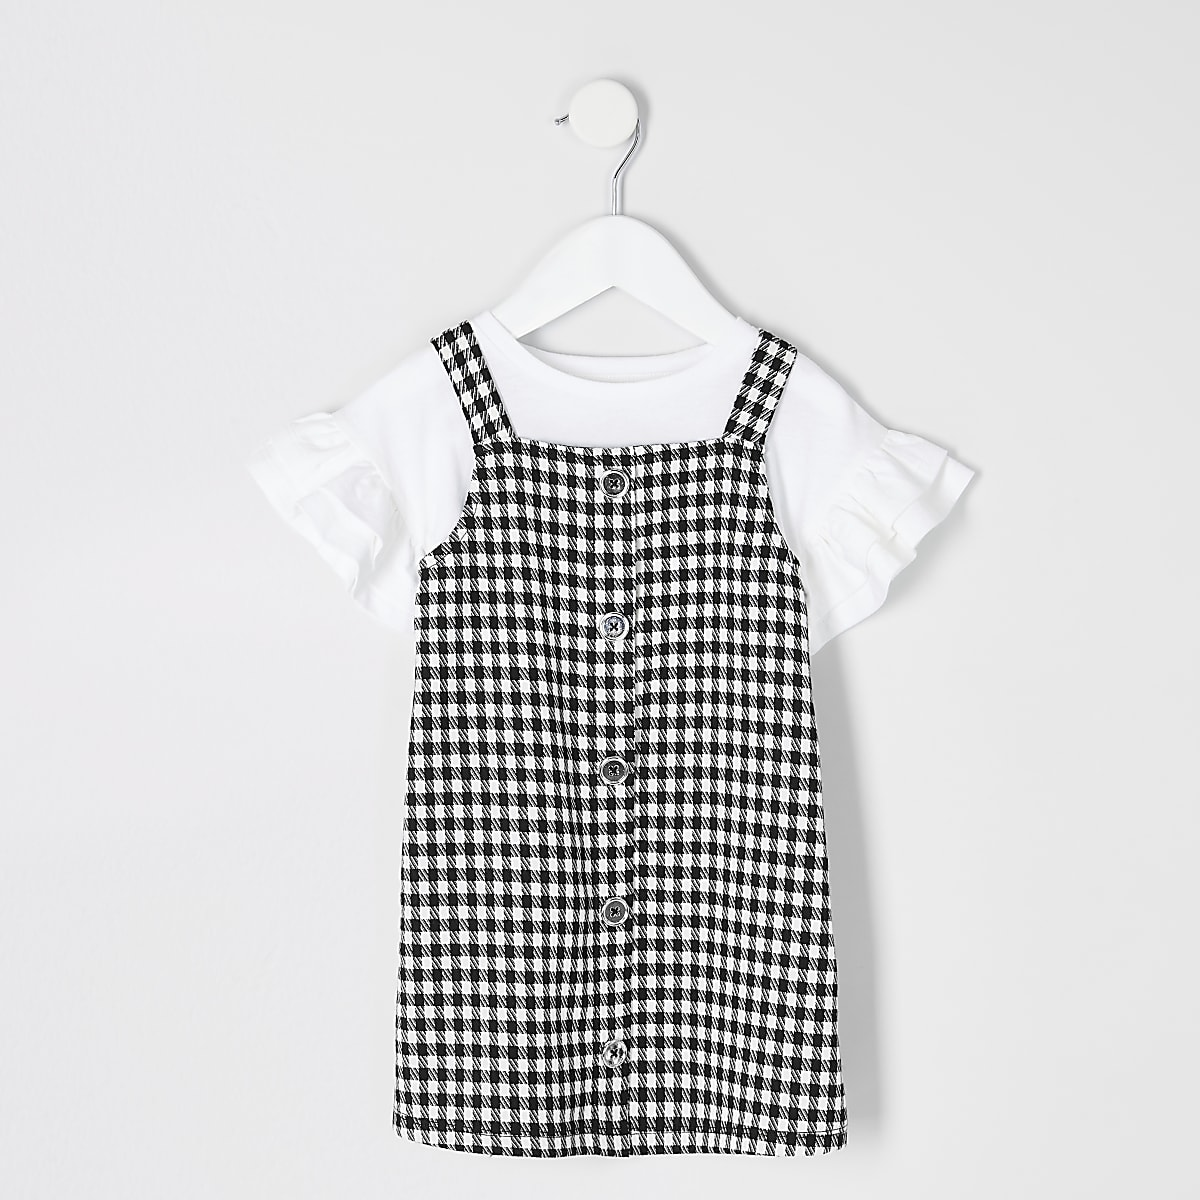 217517eded6 Mini girls black gingham pinafore outfit - Baby Girls Dresses - Mini Girls  - girls